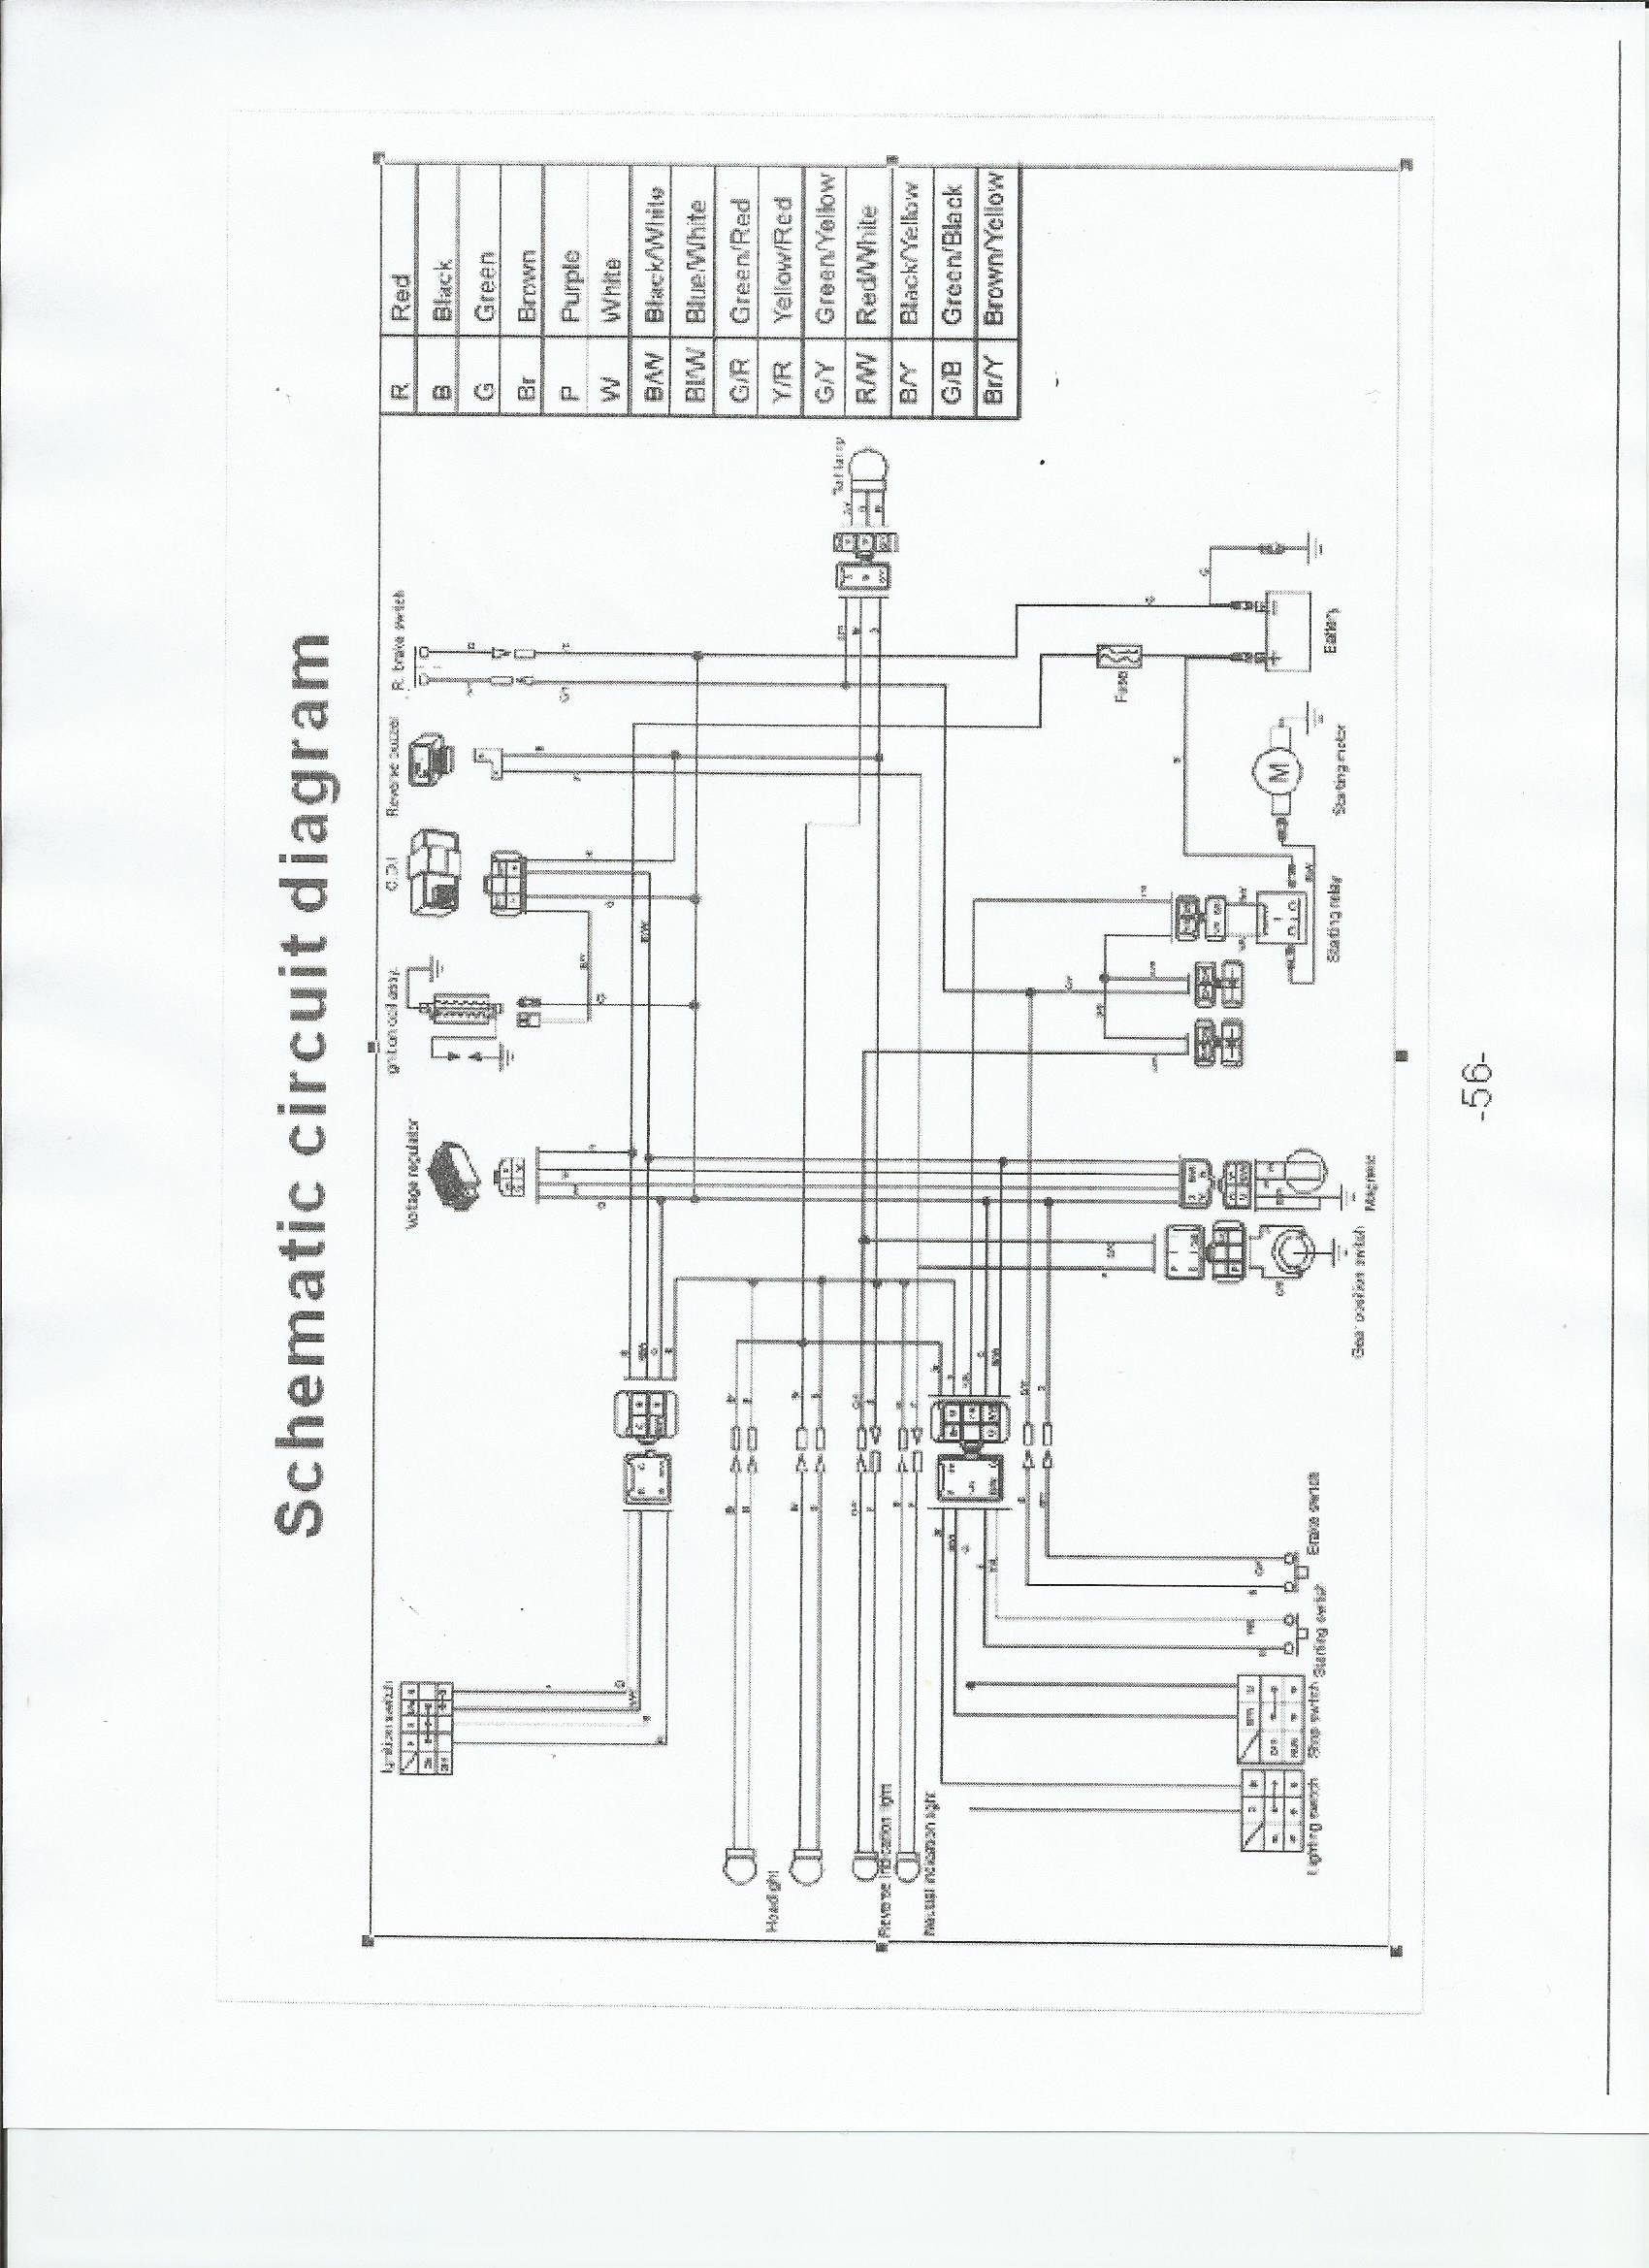 buyang motorcycle wiring diagram simple wiring schema along with pocket bike wiring 49cc moreover tao tao 110 wiring diagram [ 1700 x 2338 Pixel ]